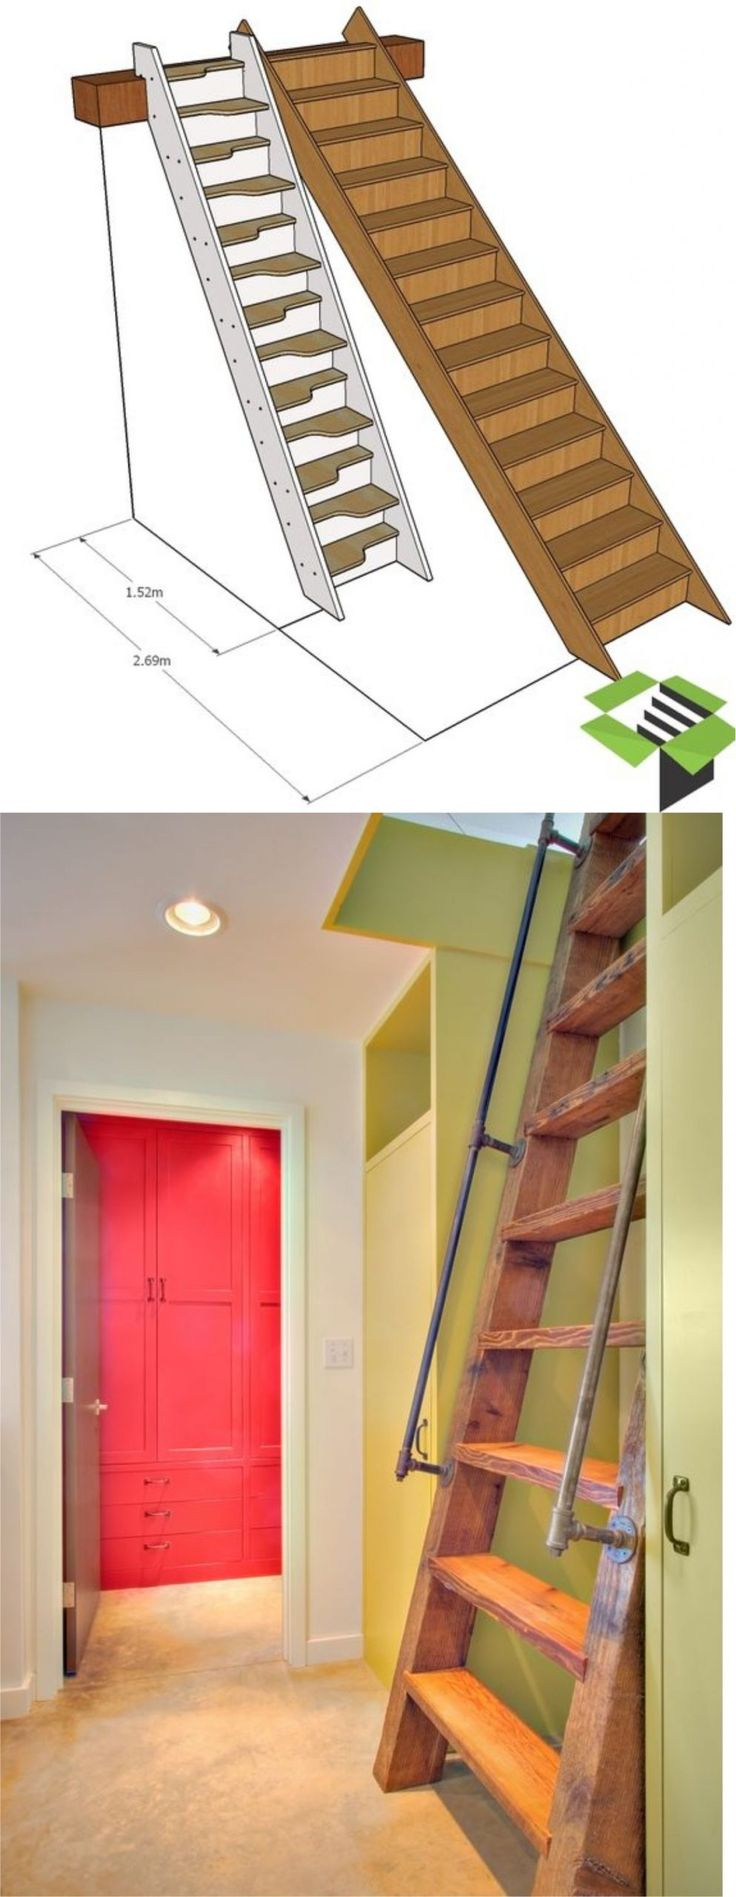 37+ The Most Creative Attic Stairs Ideas for Modern Urban